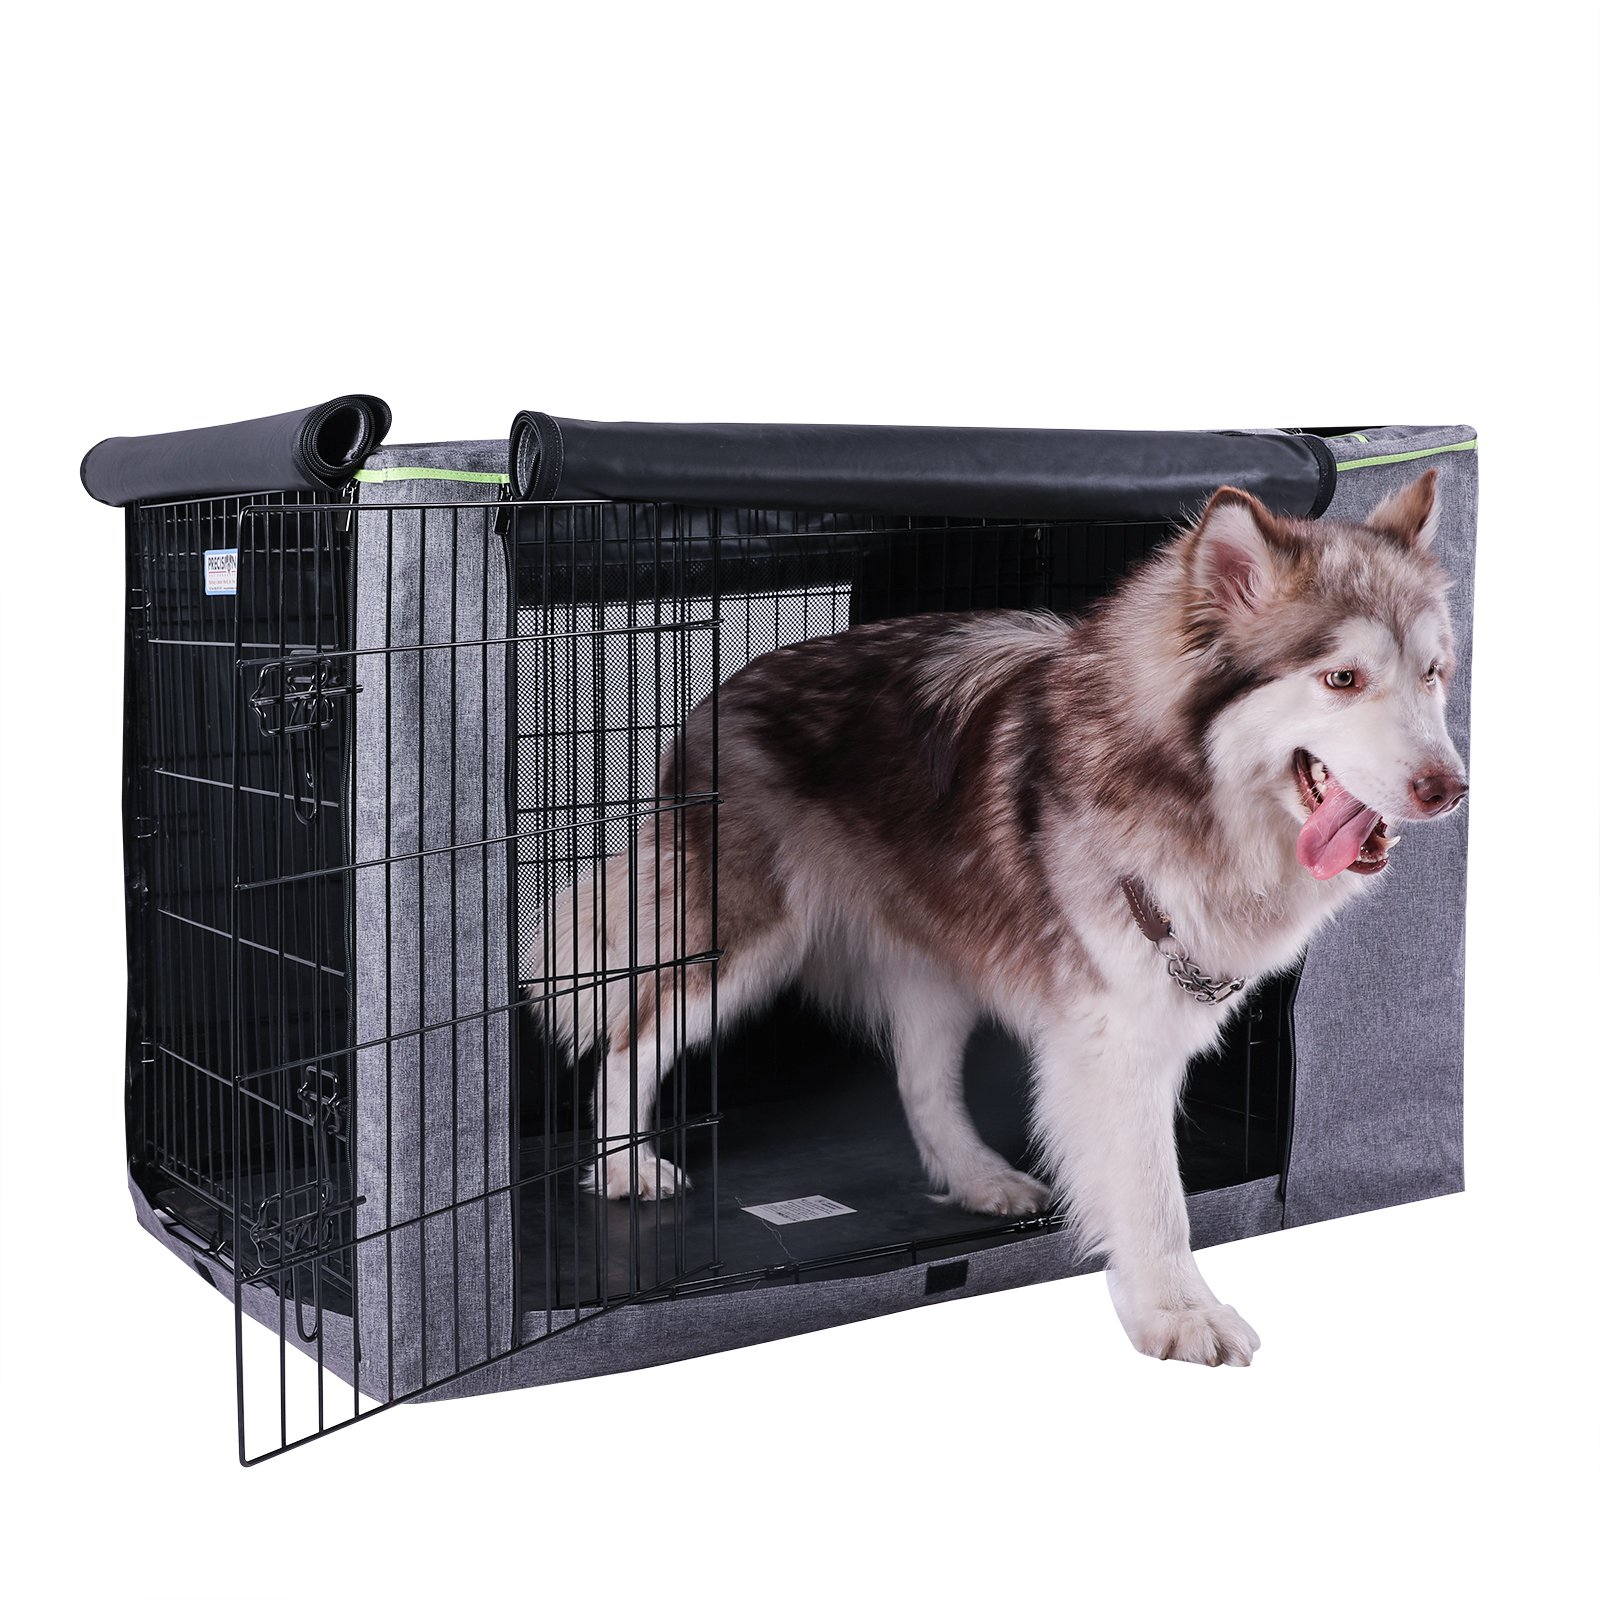 Petsfit 42'' L x 28'' W x 30'' H Extra Side Door Polyester Crate Cover, for 5000 Wire Crate by Petsfit